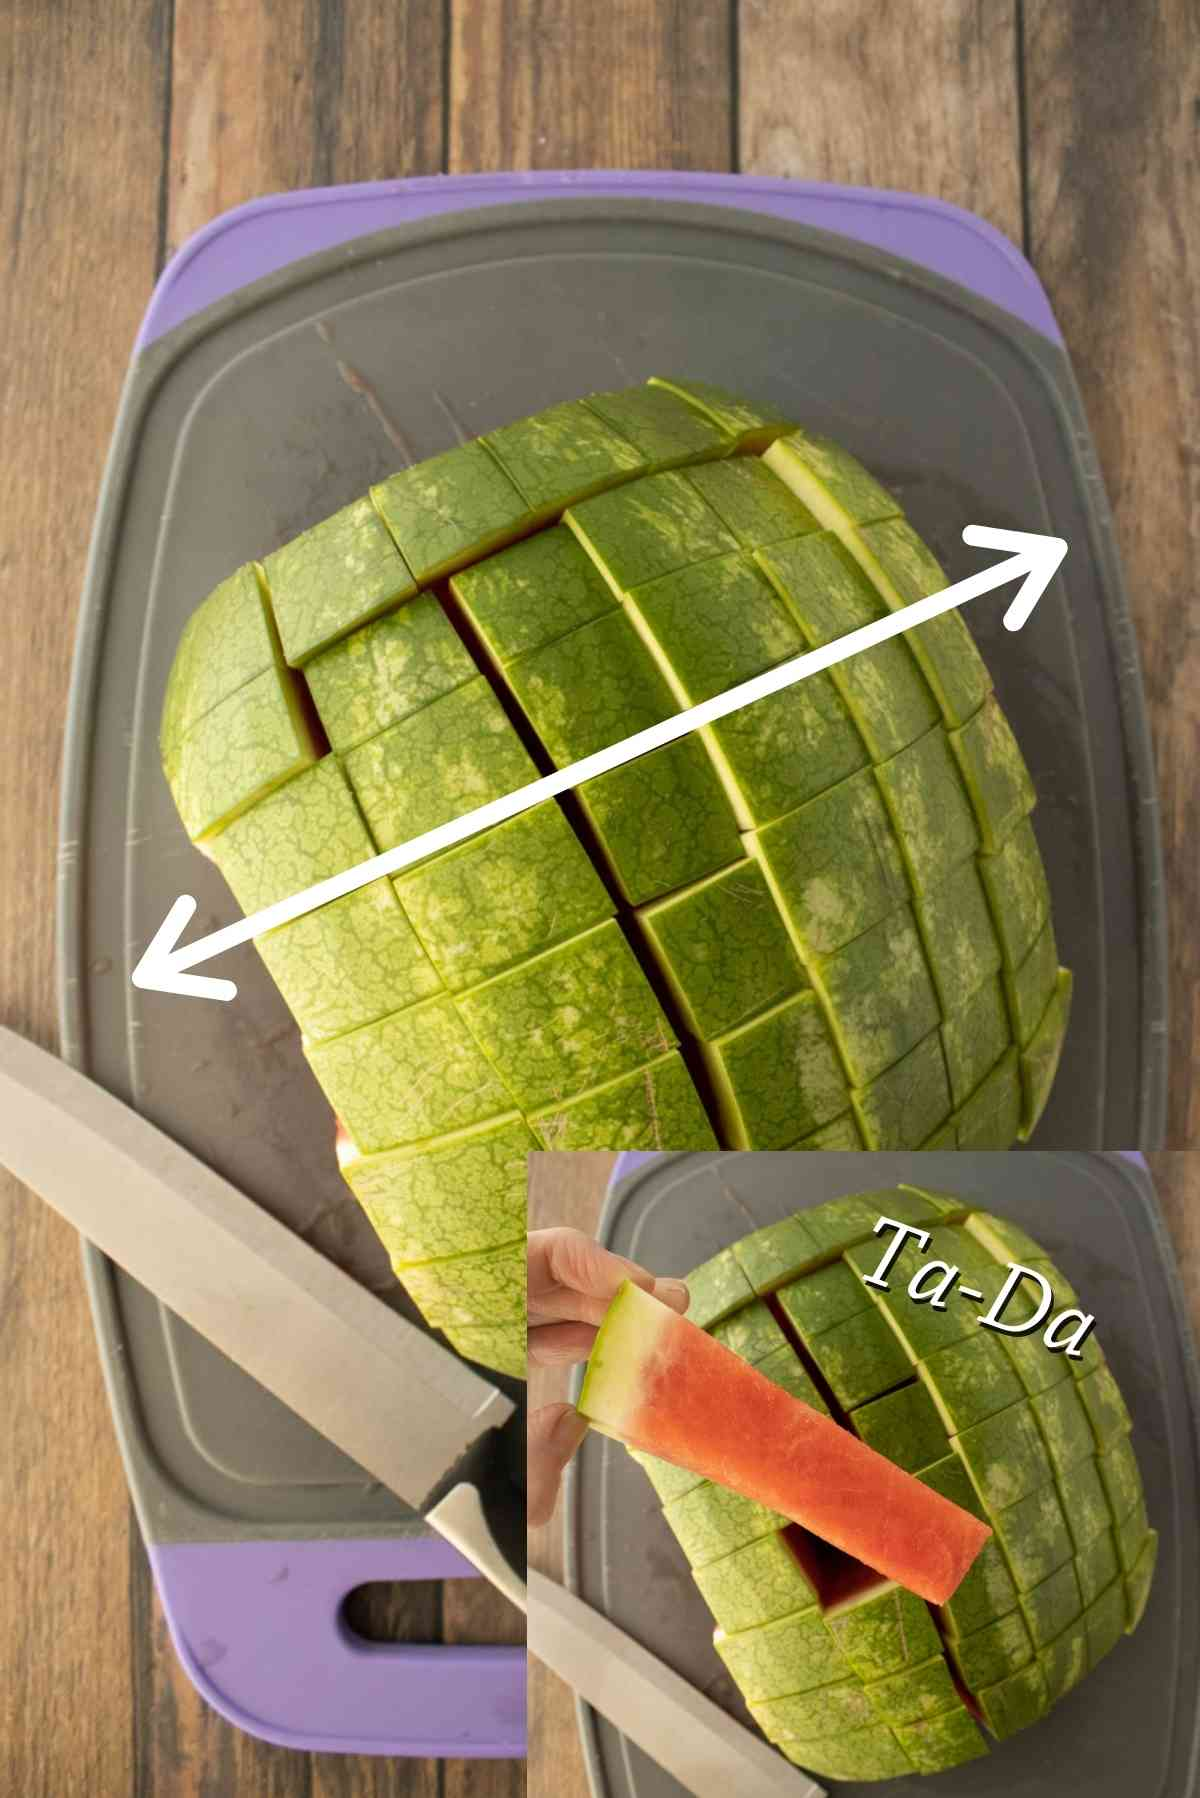 Turn the melon and cut into slices that are perpendicular to the original slices.